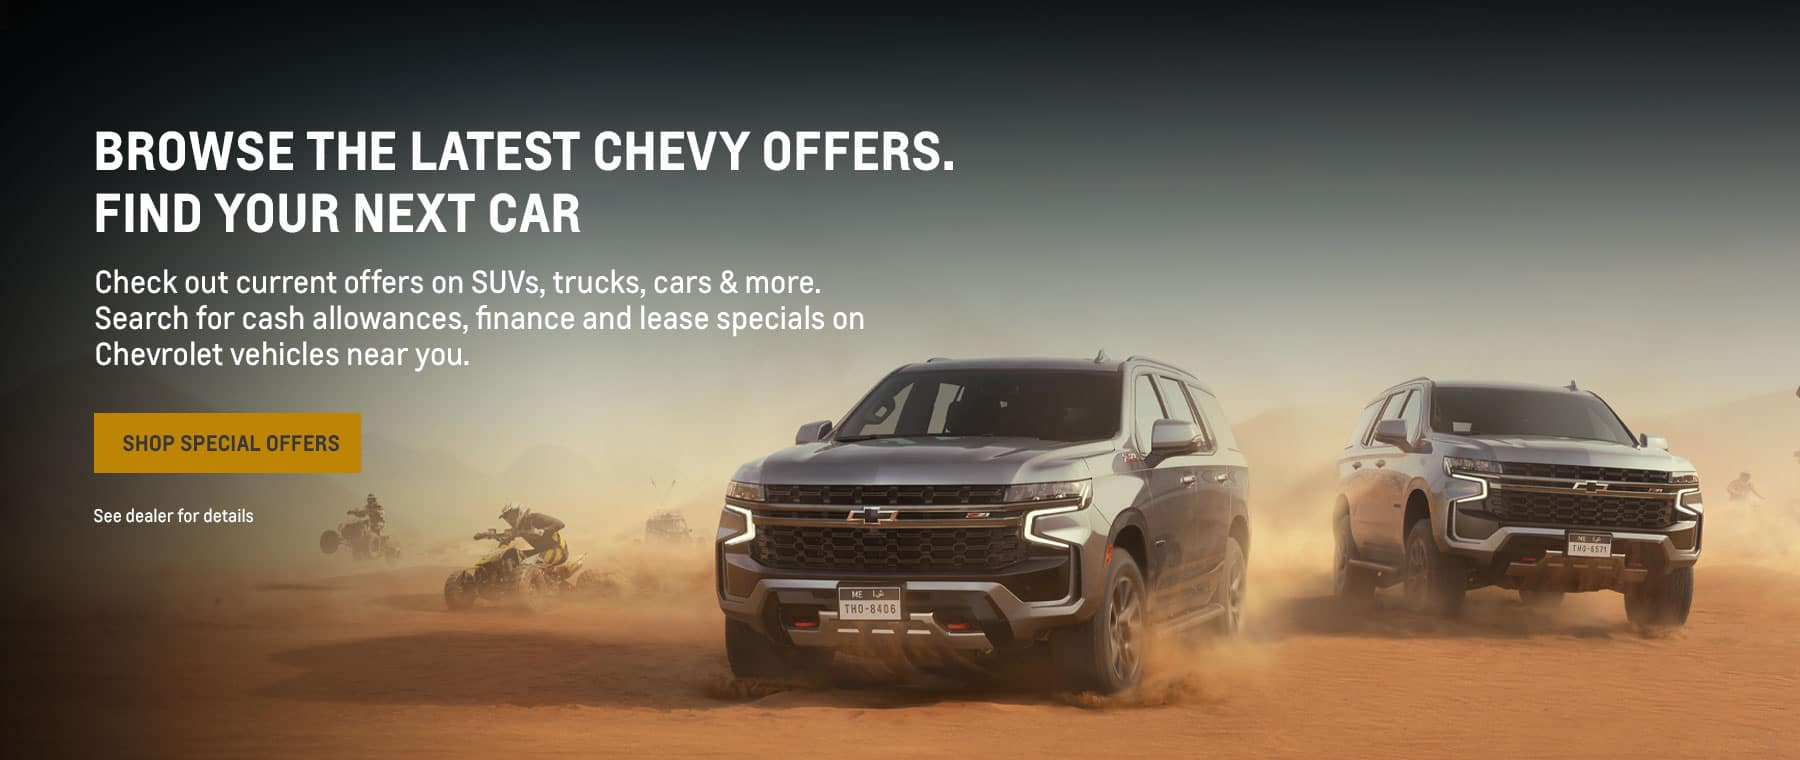 Browse the latest Chevy Offers. Find Your Next Car